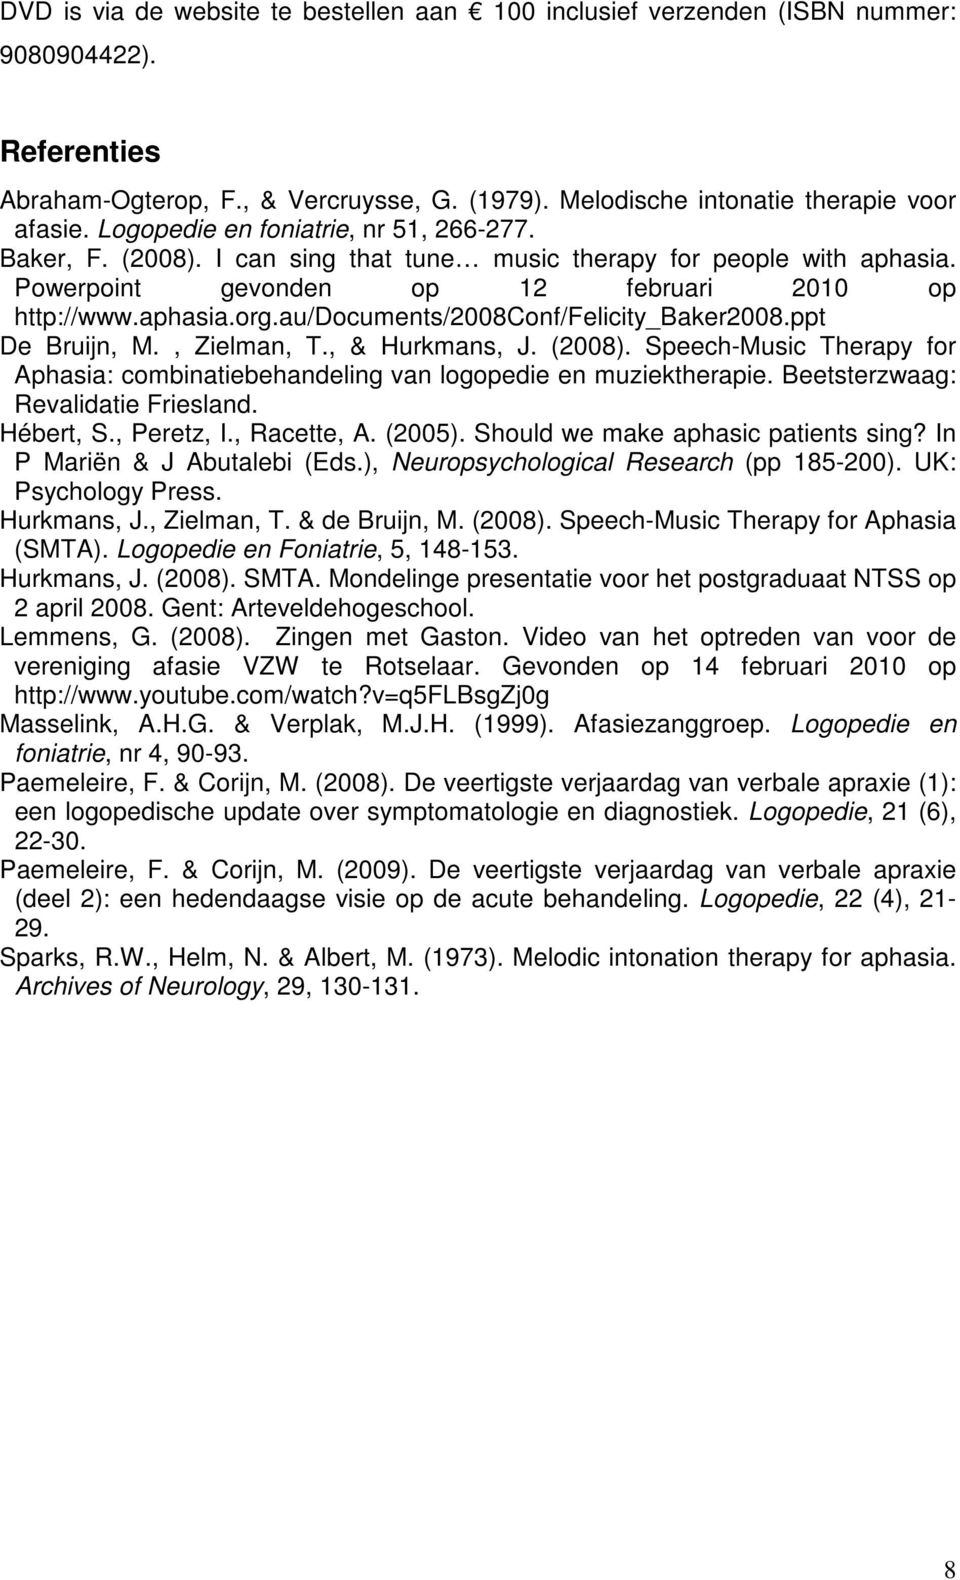 au/documents/2008conf/felicity_baker2008.ppt De Bruijn, M., Zielman, T., & Hurkmans, J. (2008). Speech-Music Therapy for Aphasia: combinatiebehandeling van logopedie en muziektherapie.